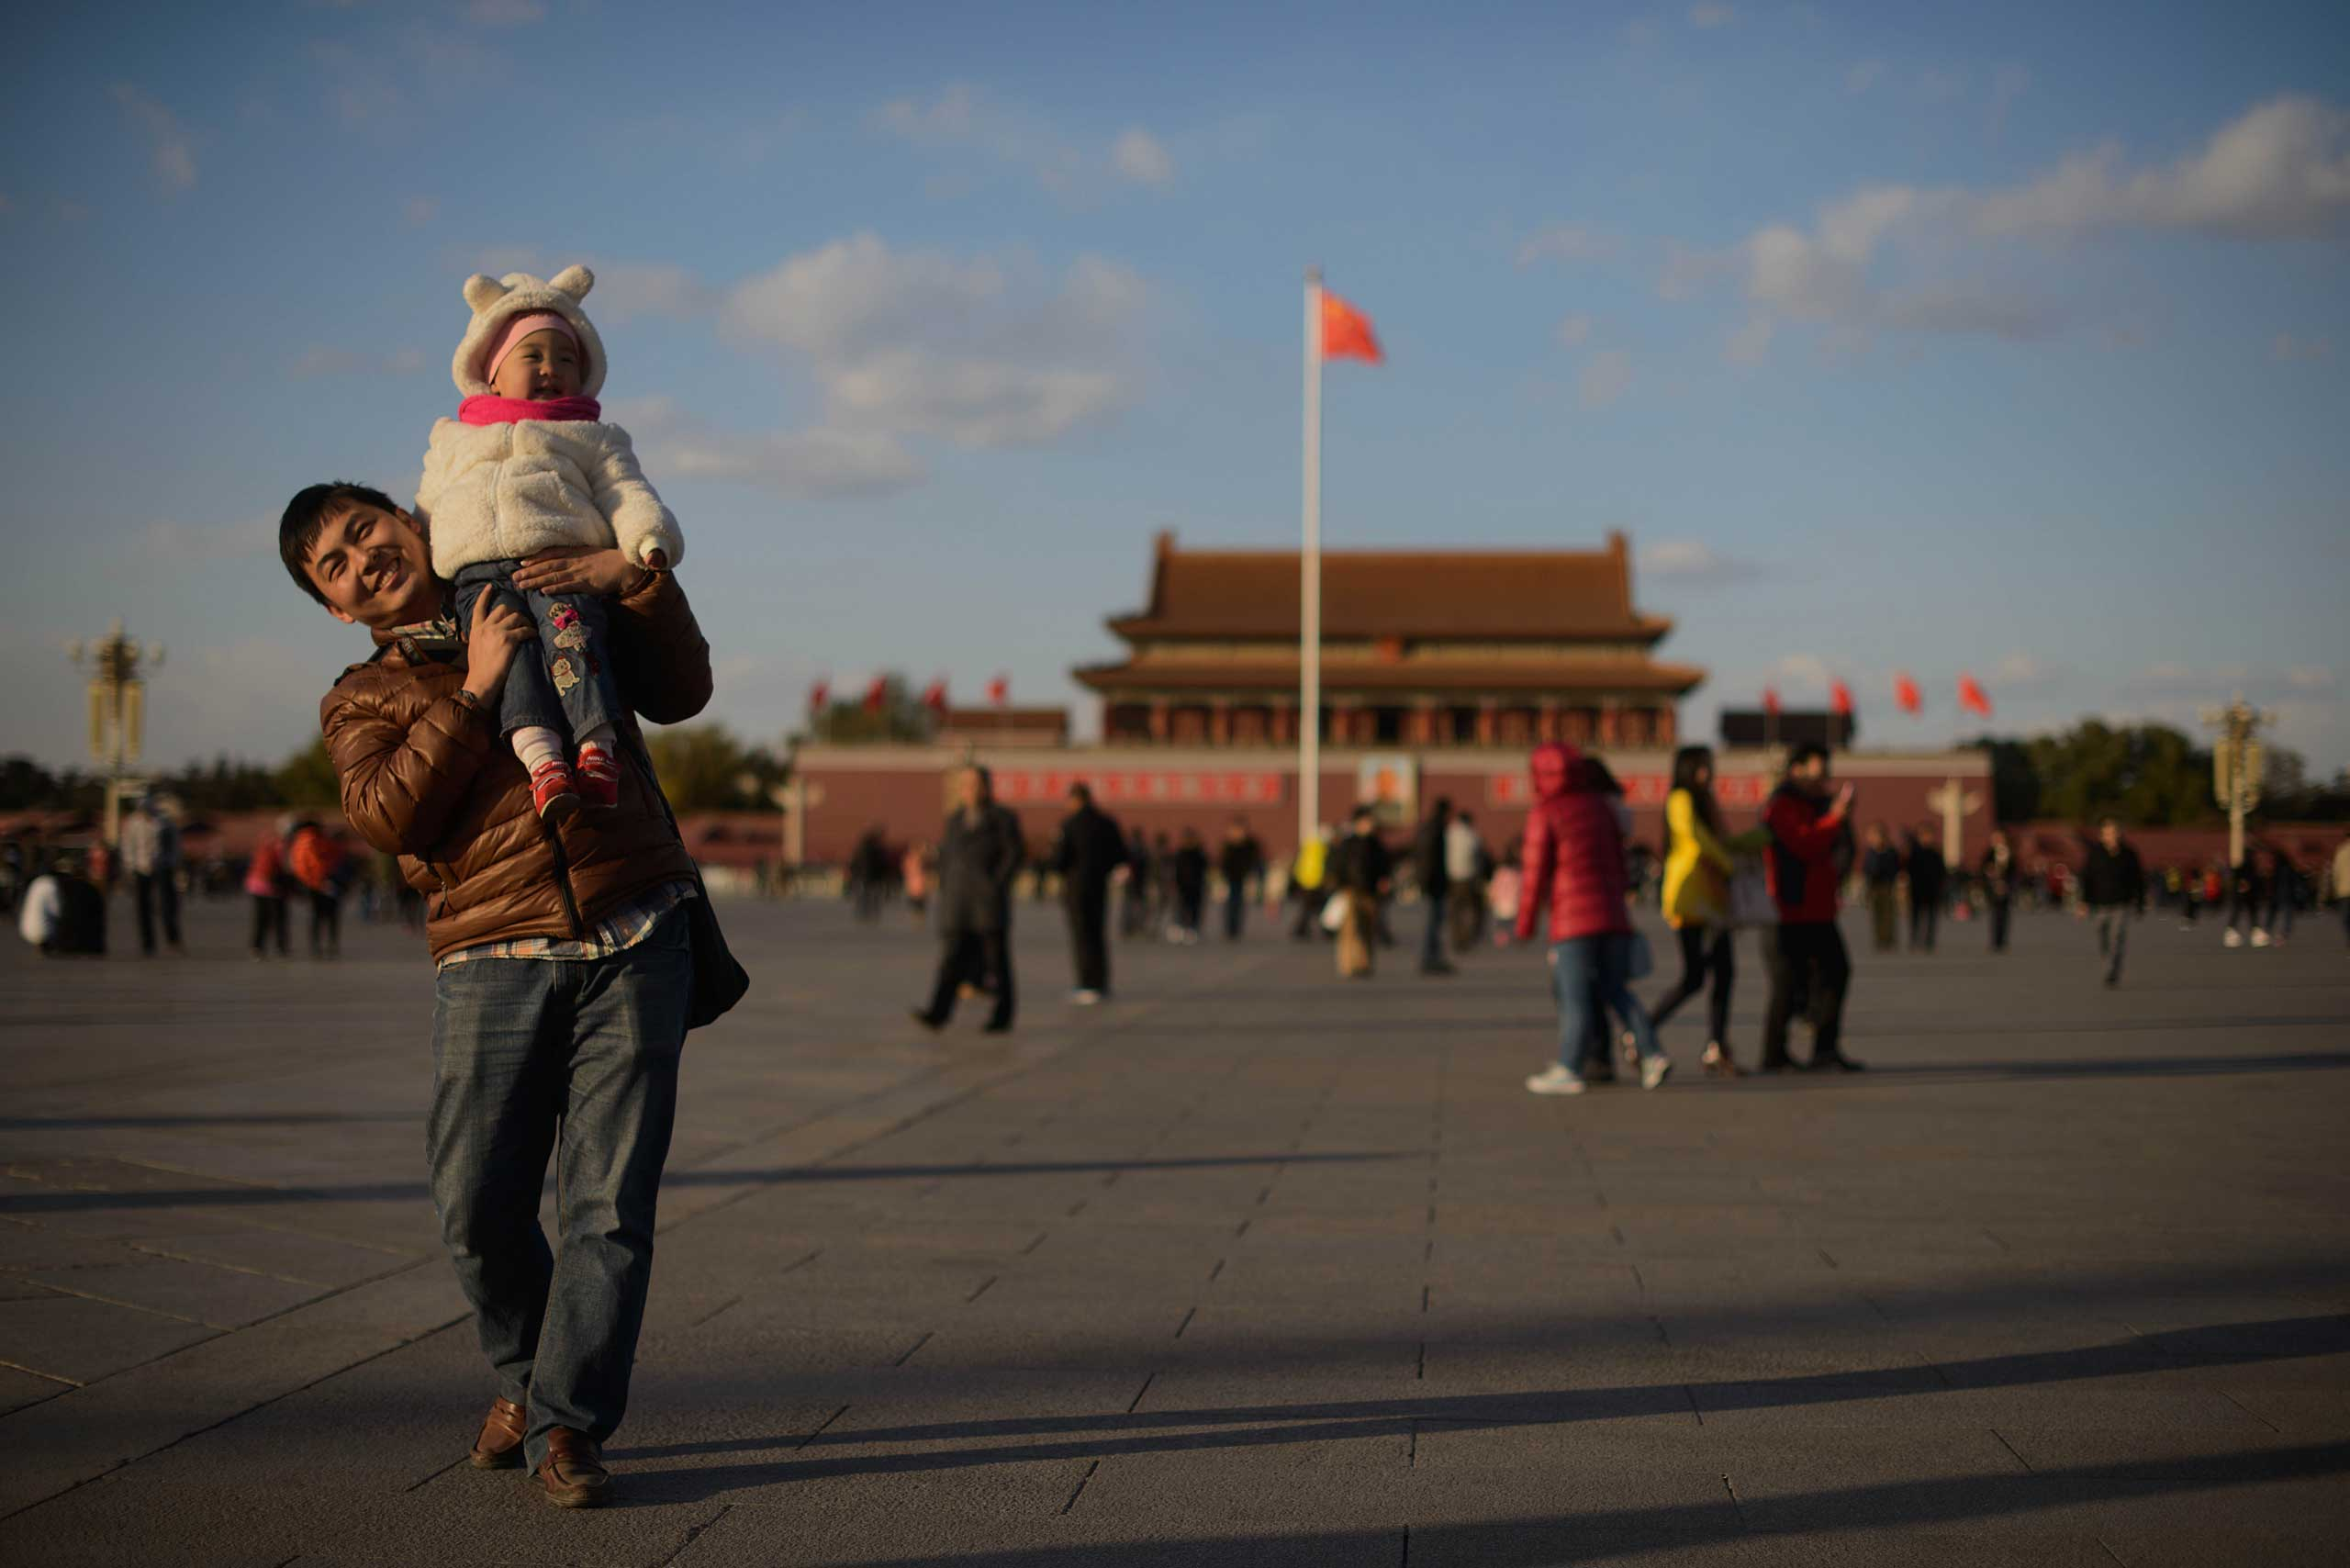 A man and child walk on Tiananmen Square in Beijing in 2013.